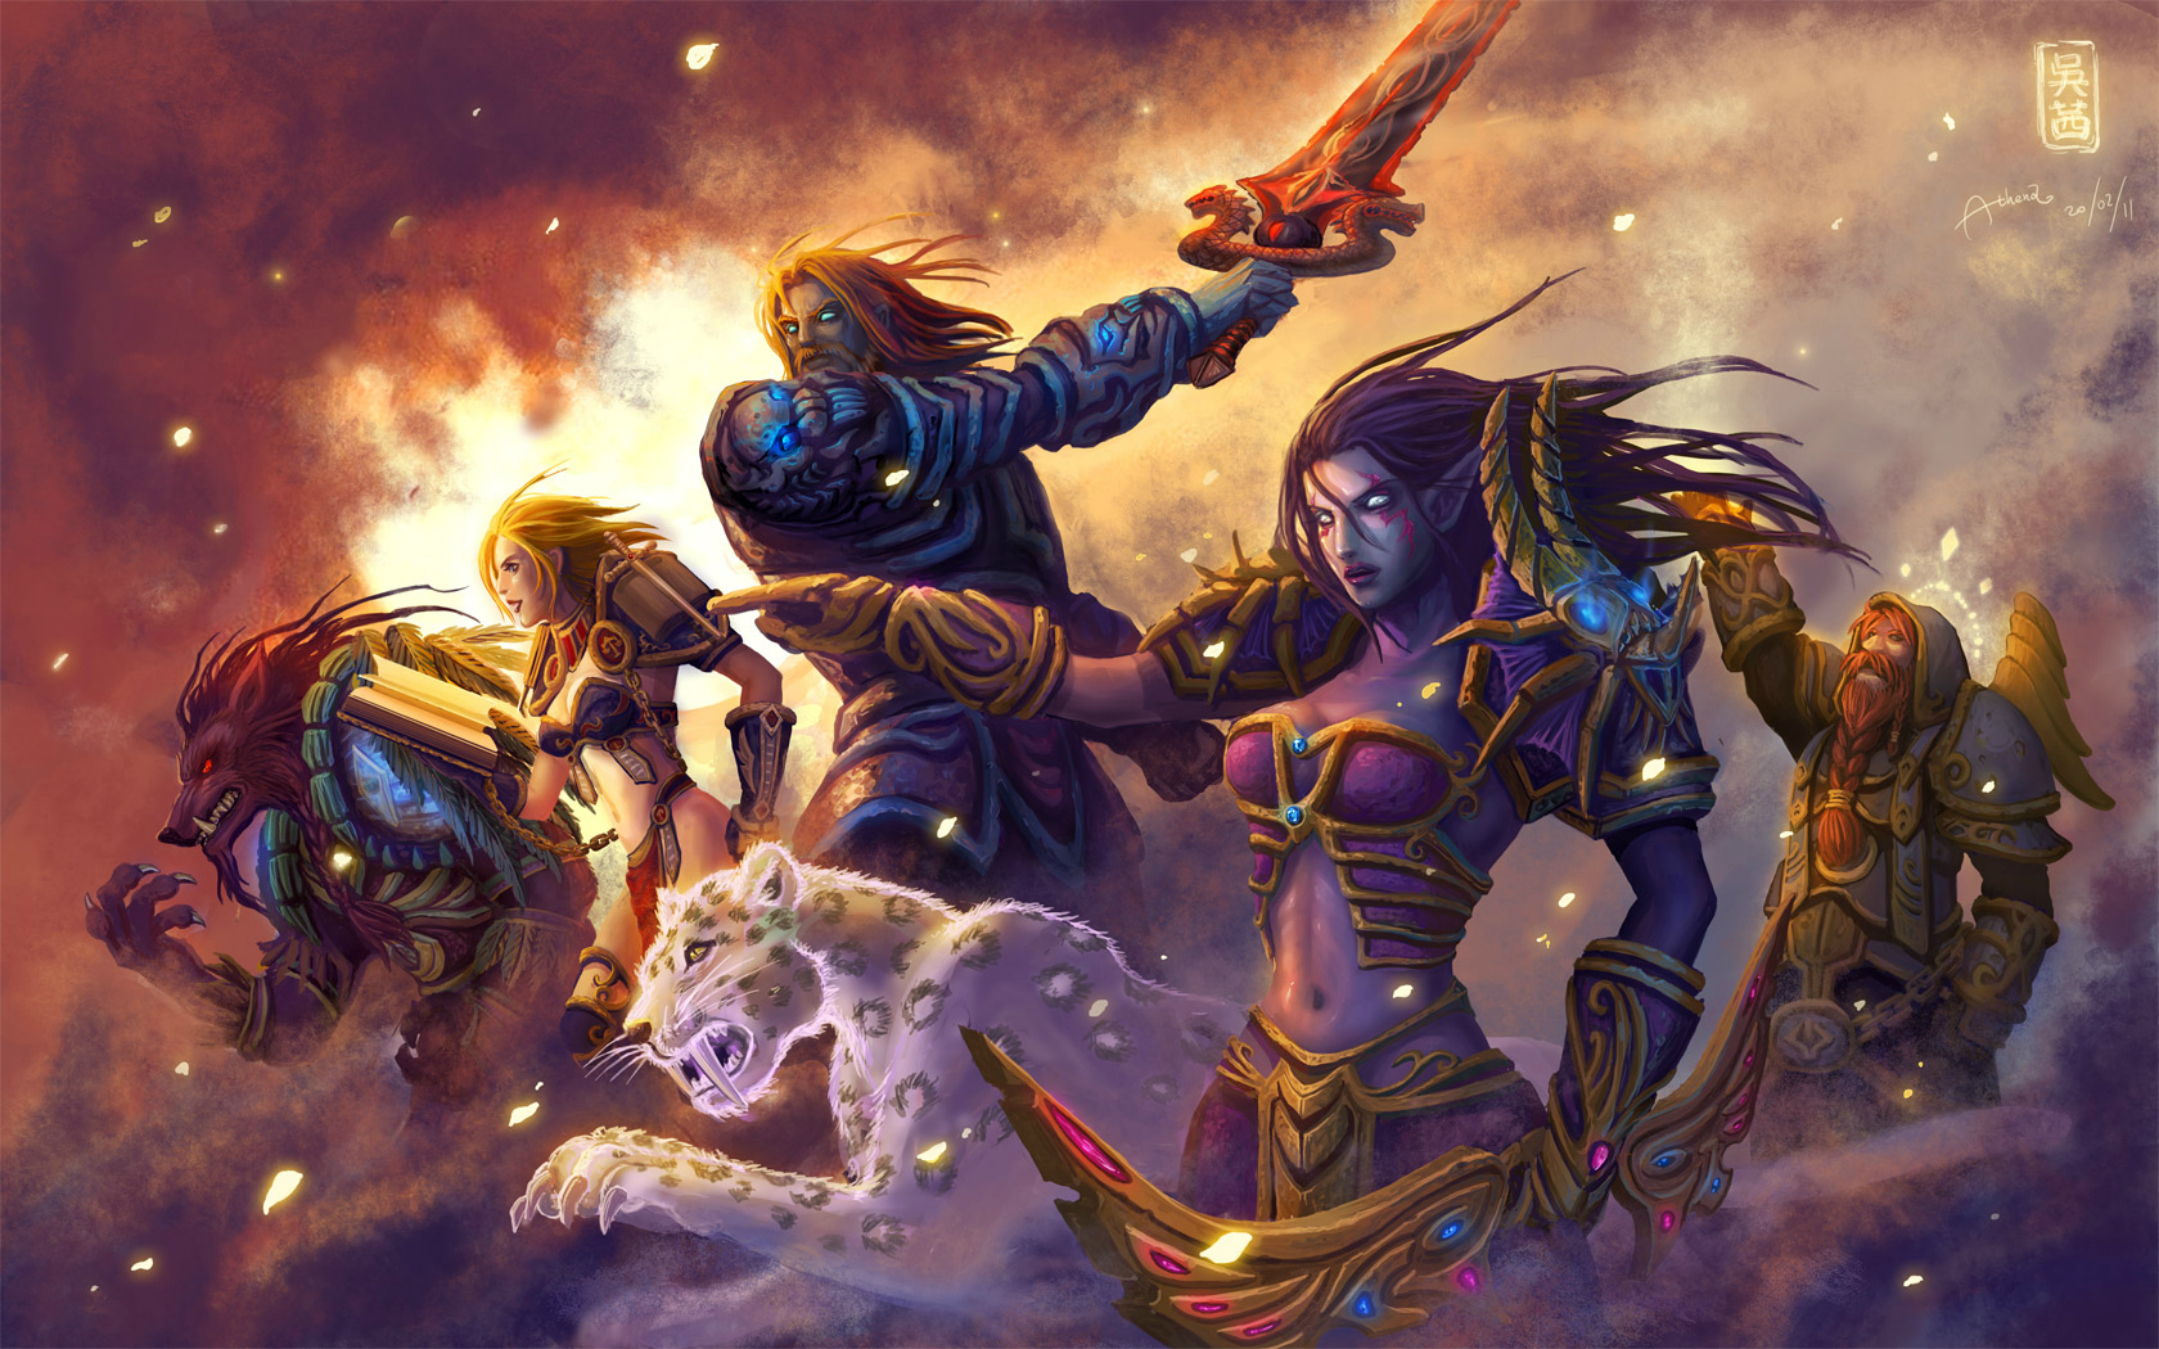 WoW Patch a RU game download, game download WoW Patch a RU, free WoW